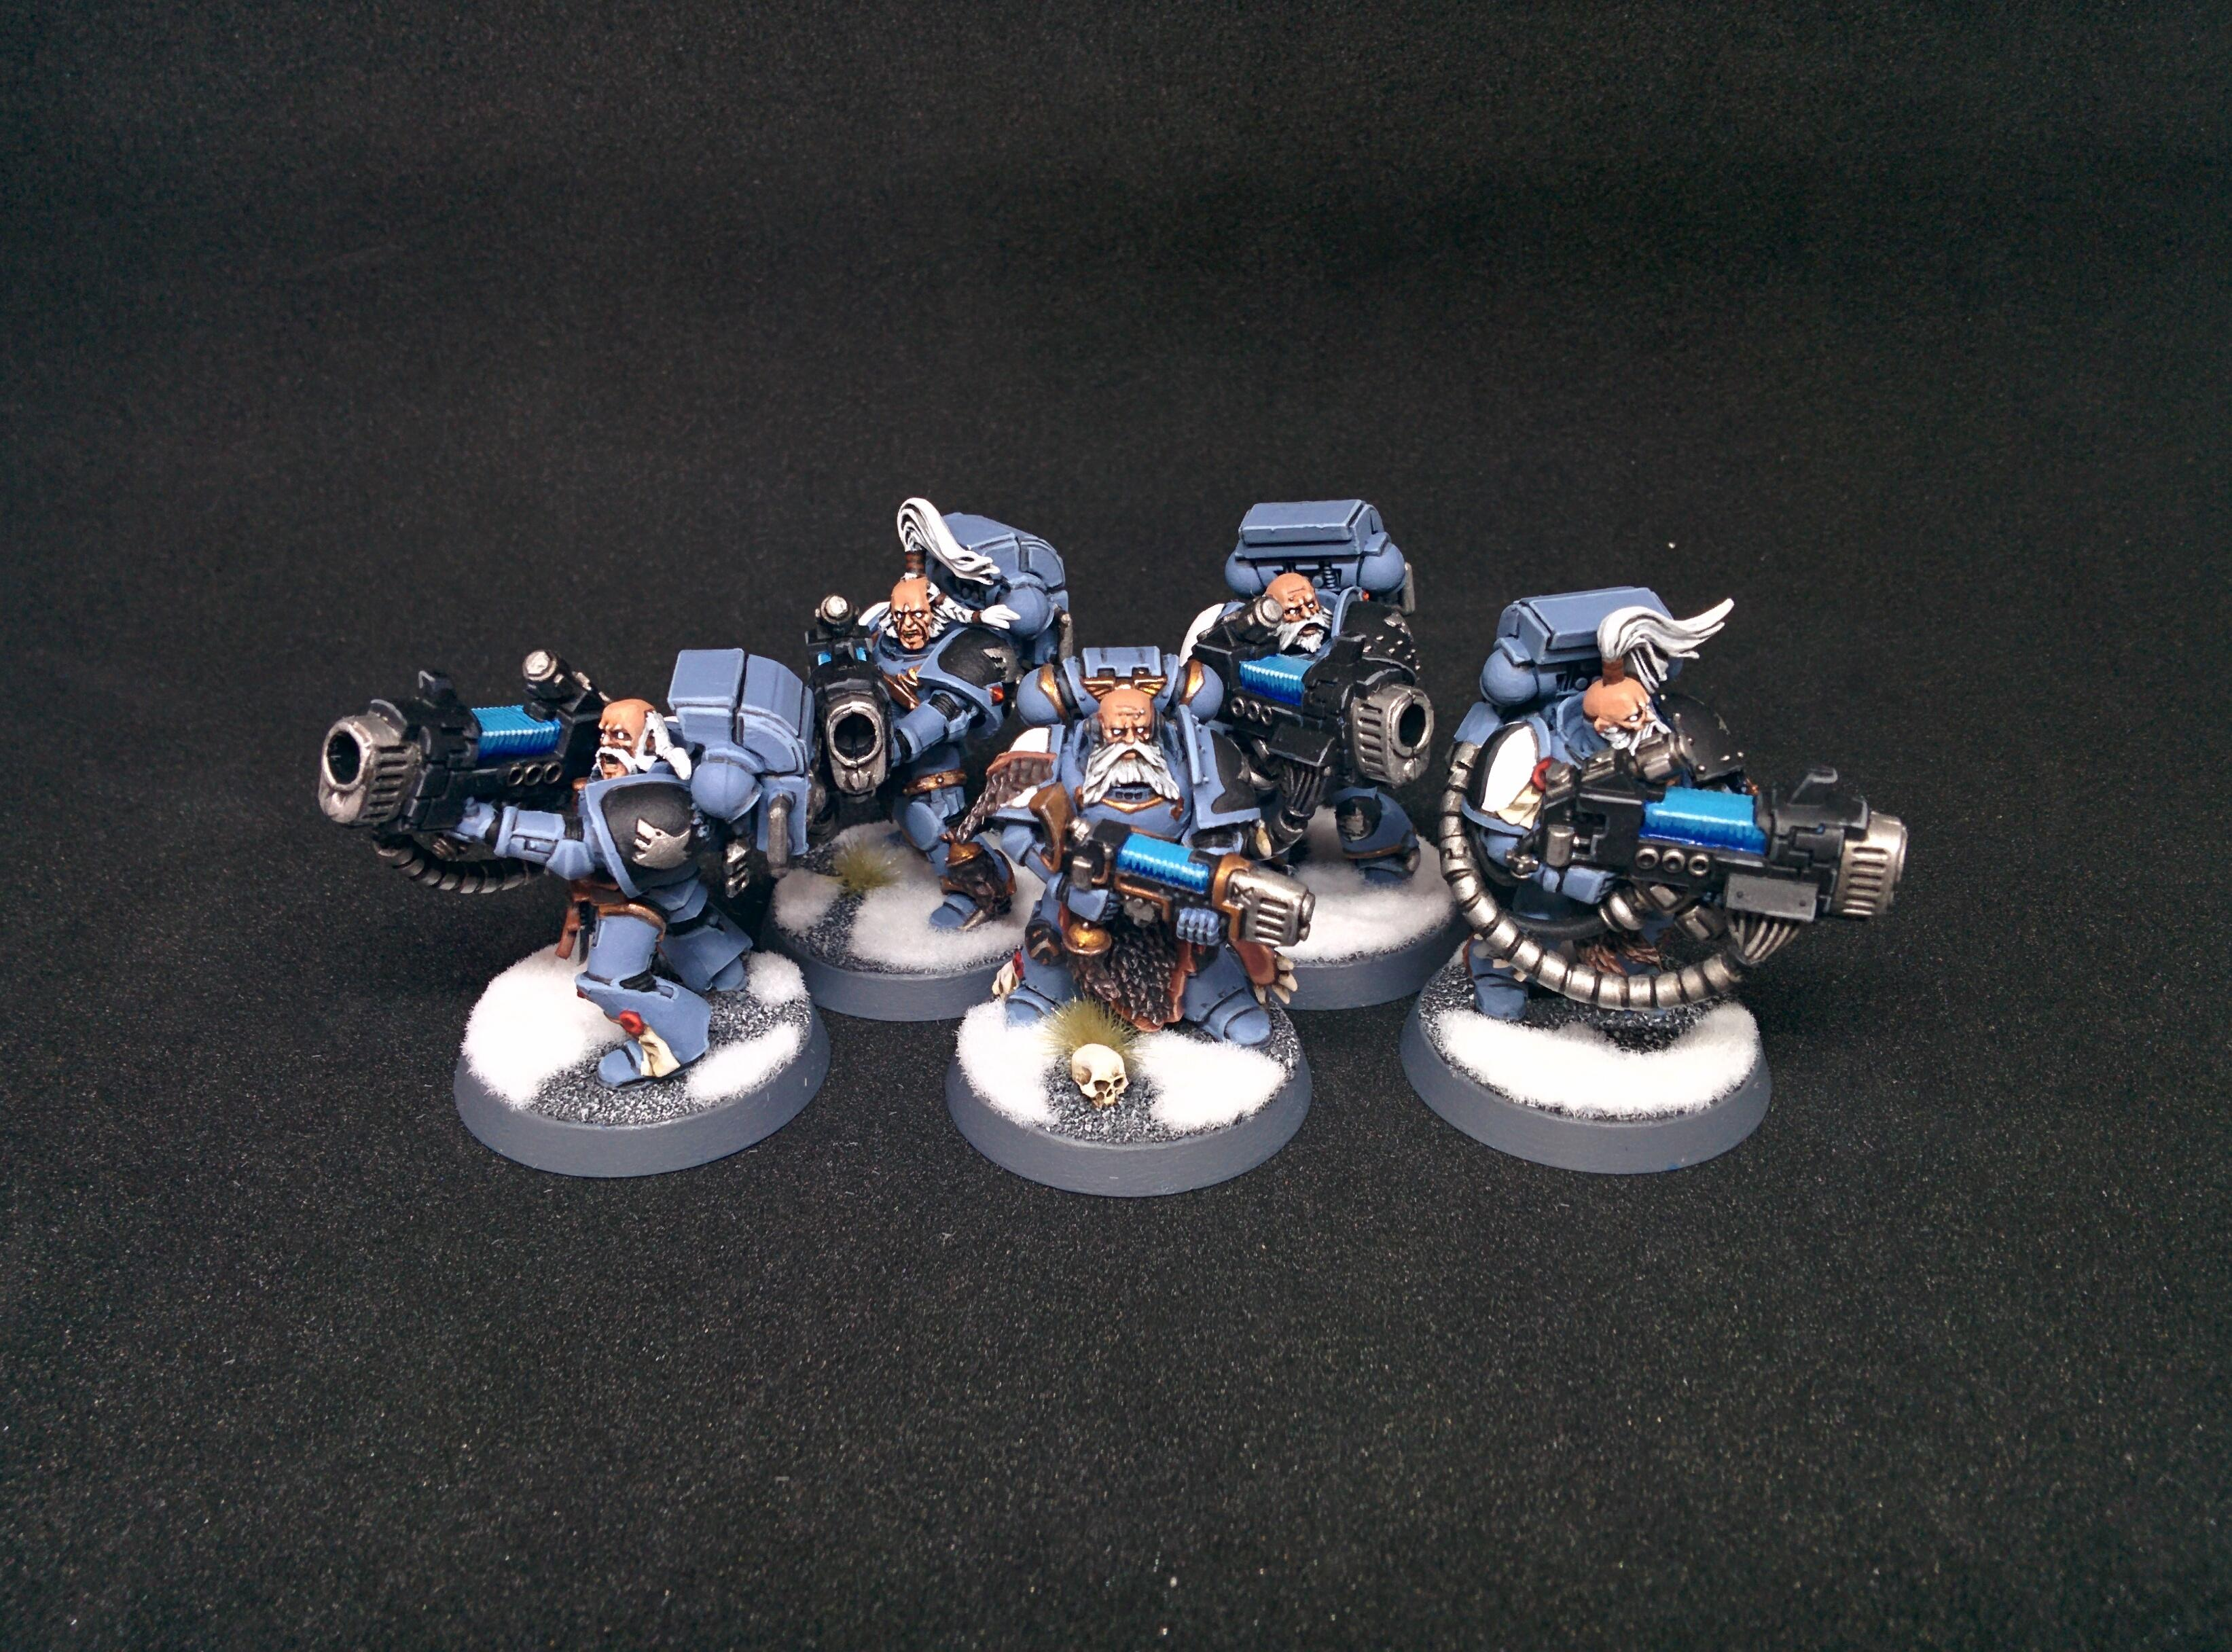 Ironwolves, Long Fangs, Plasma, Snow, Space Marines, Space Wolves, Vlka Fenryka